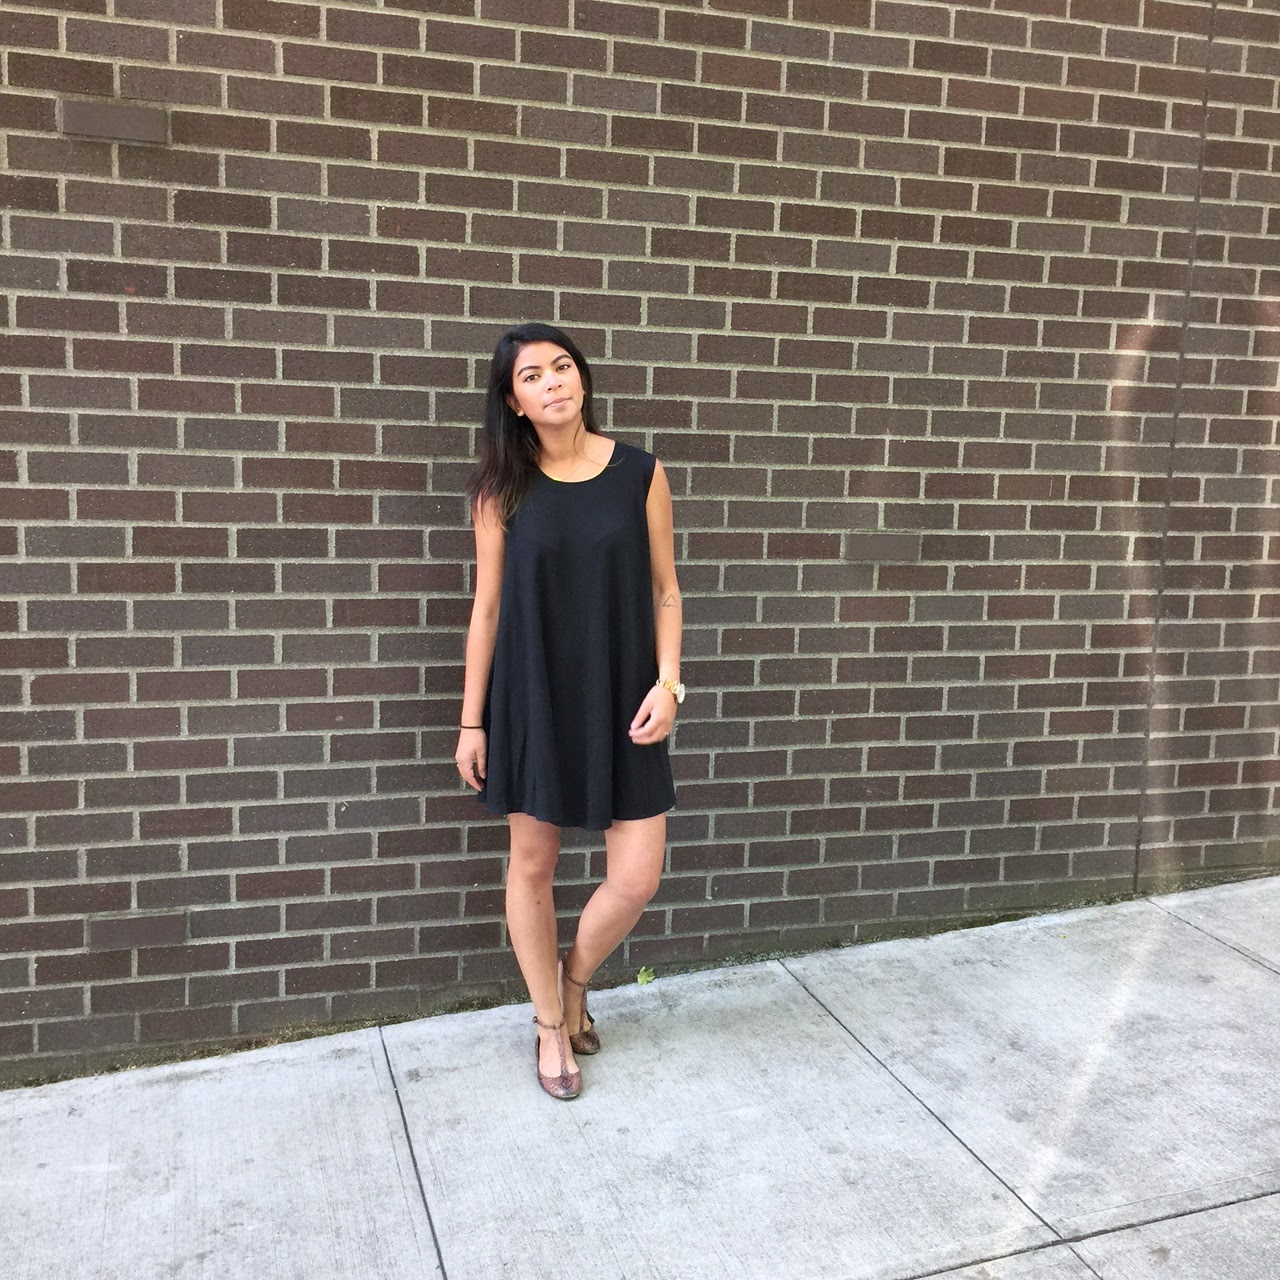 black shift dress, baby doll dress, brandy melville, pacific northwest, portland blogger, the p town girls, fblogger, fashion blogger, style blogger, portland style, streetstyle,